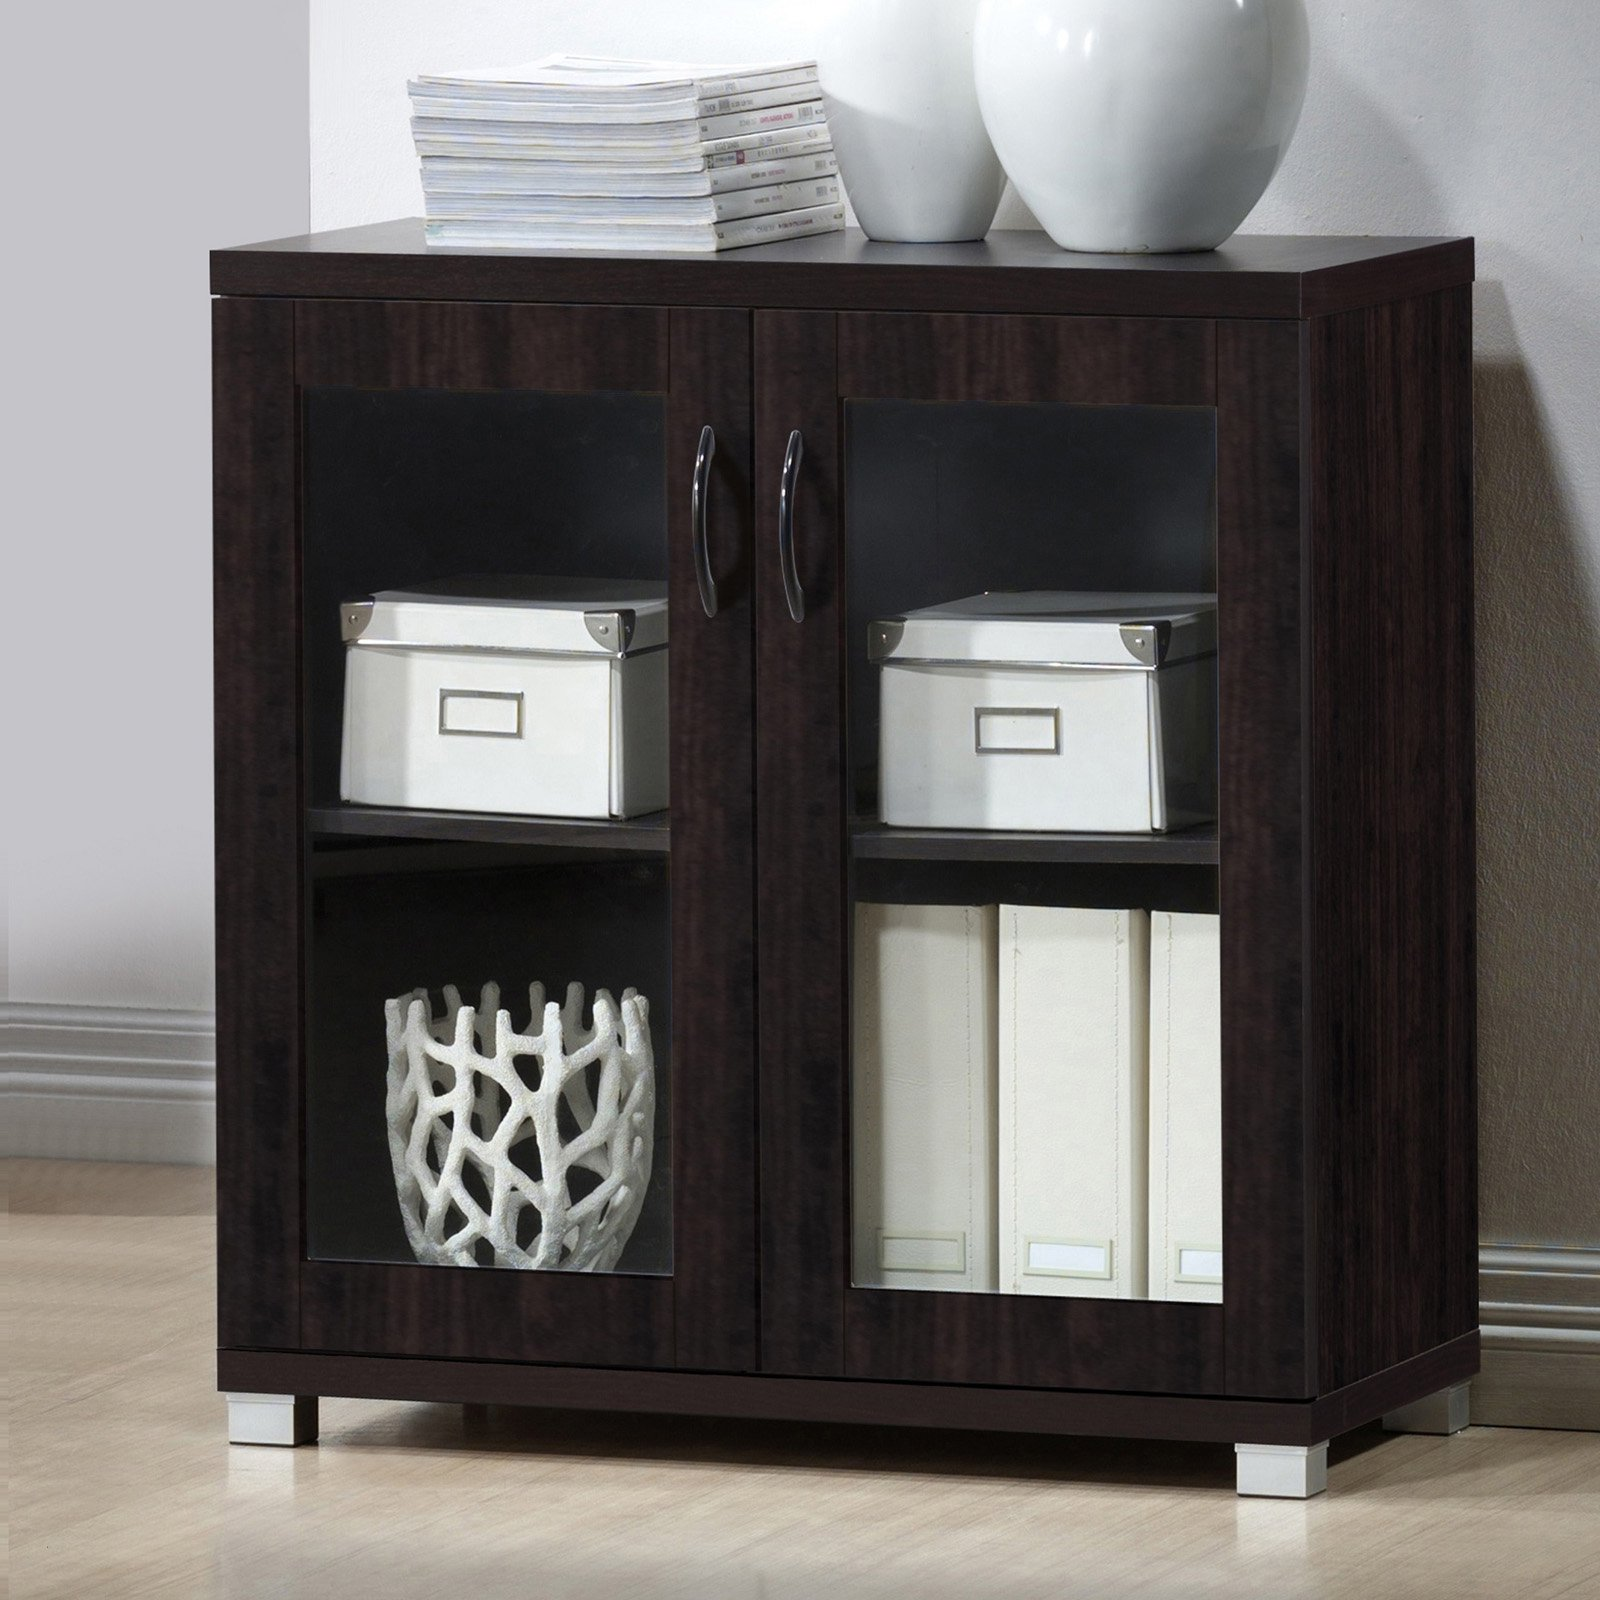 Charmant Baxton Studio Zentra Modern And Contemporary Dark Brown Sideboard Storage  Cabinet With Glass Doors